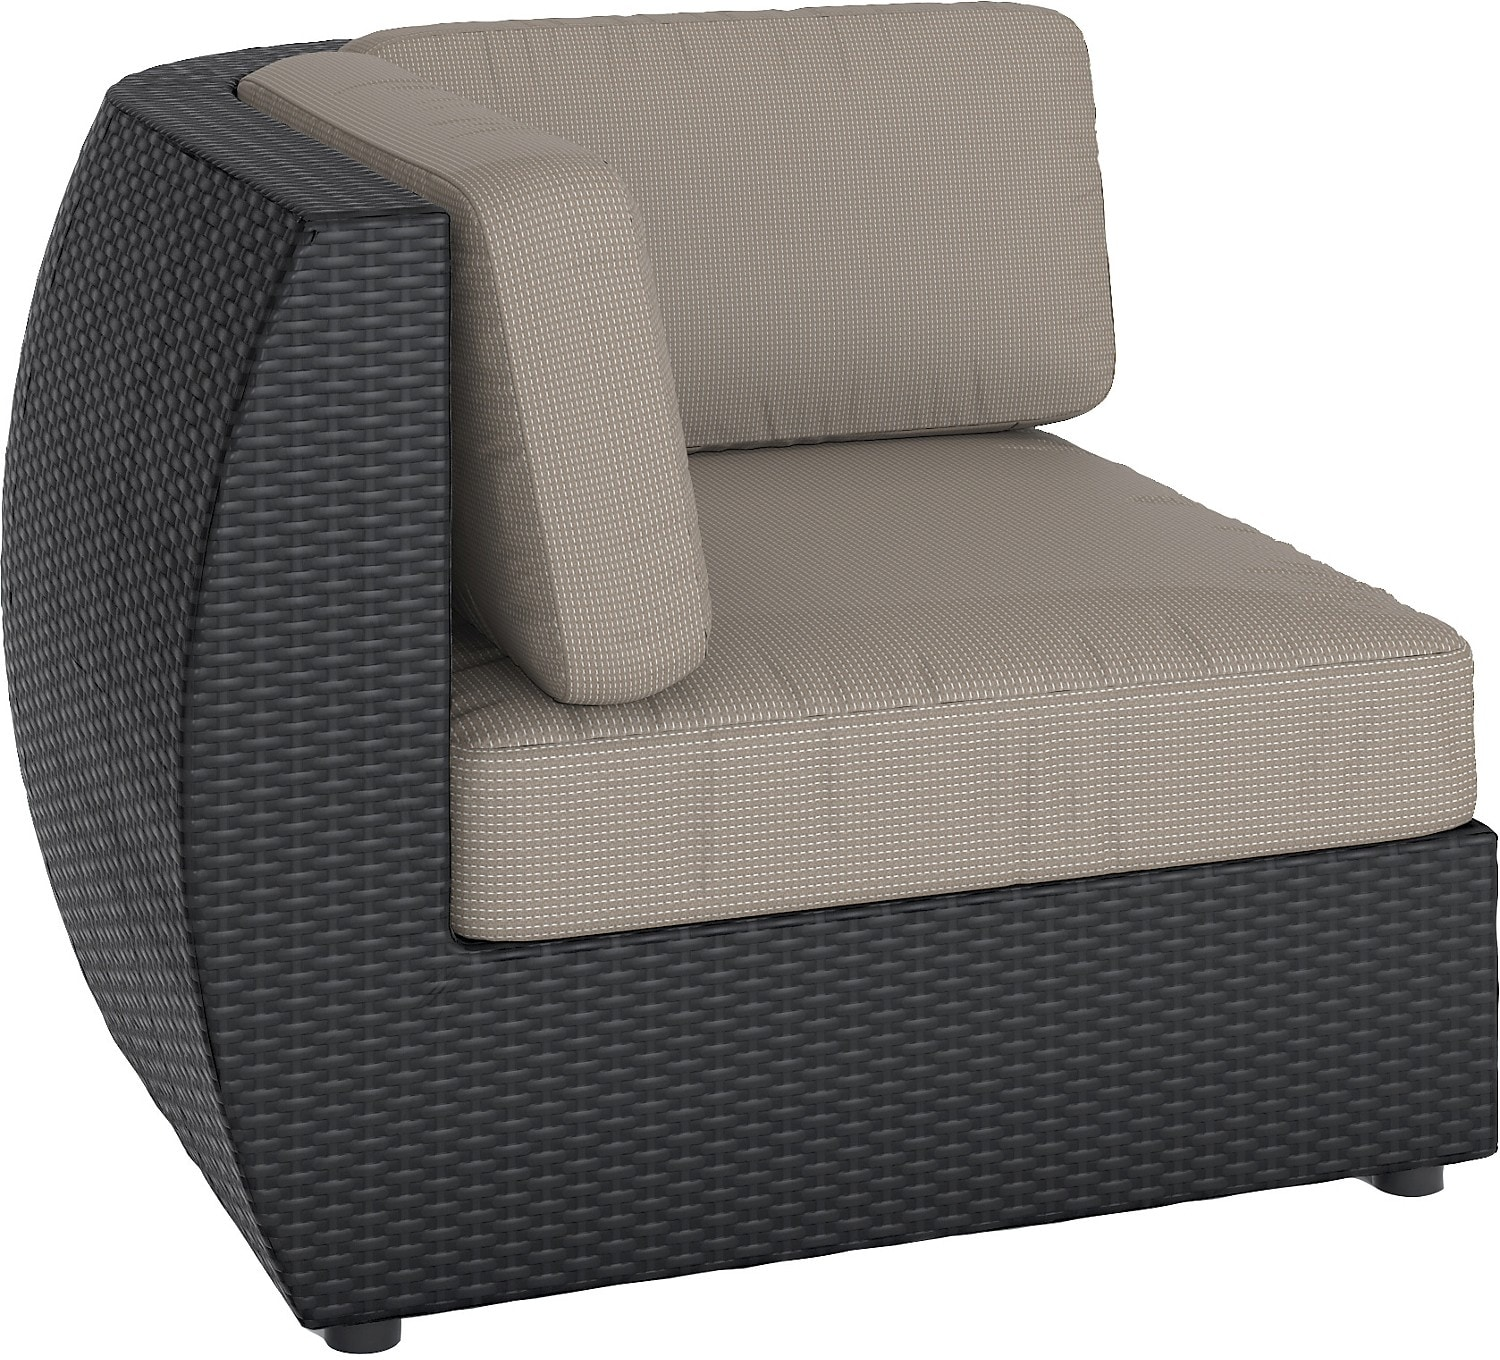 Outdoor Furniture - Seattle Patio Corner Seat